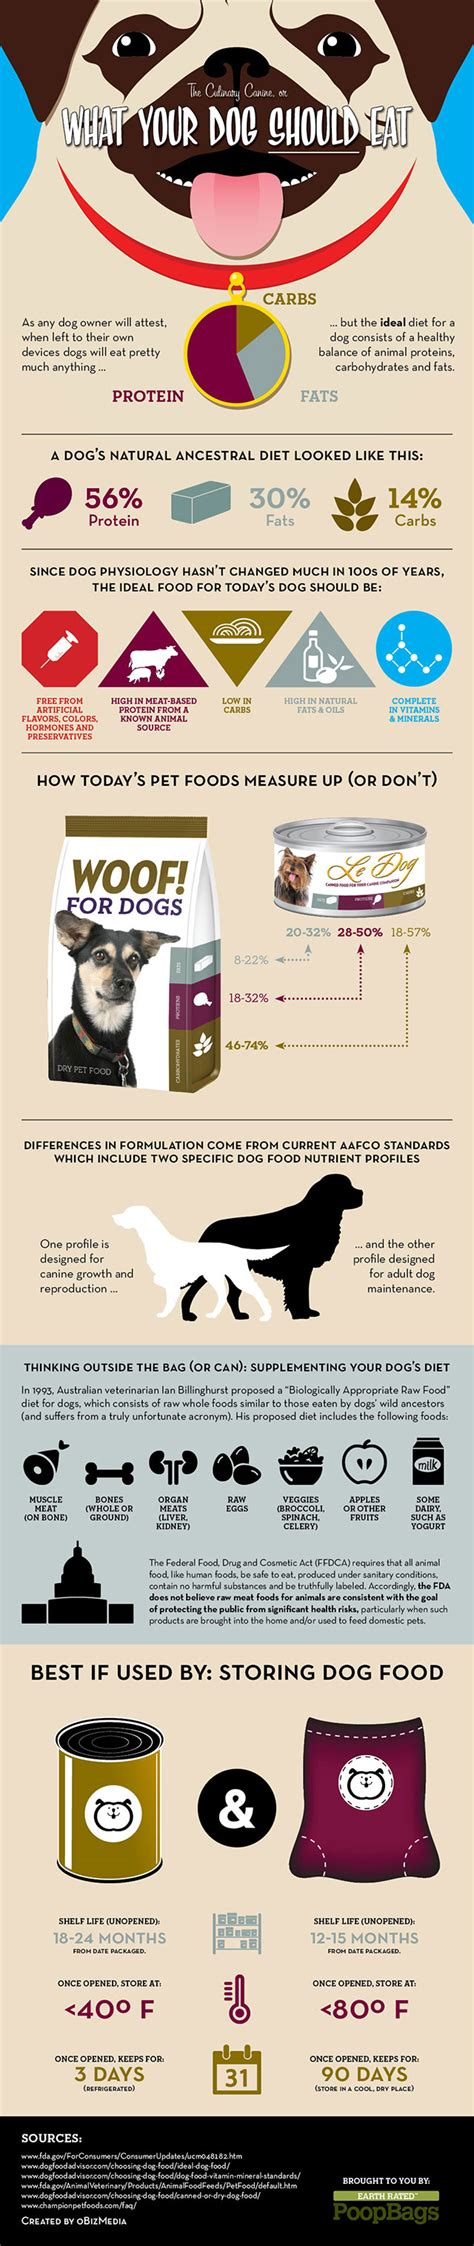 what should puppies eat infographic what dogs should eat bad sydney can t read keep the wagging